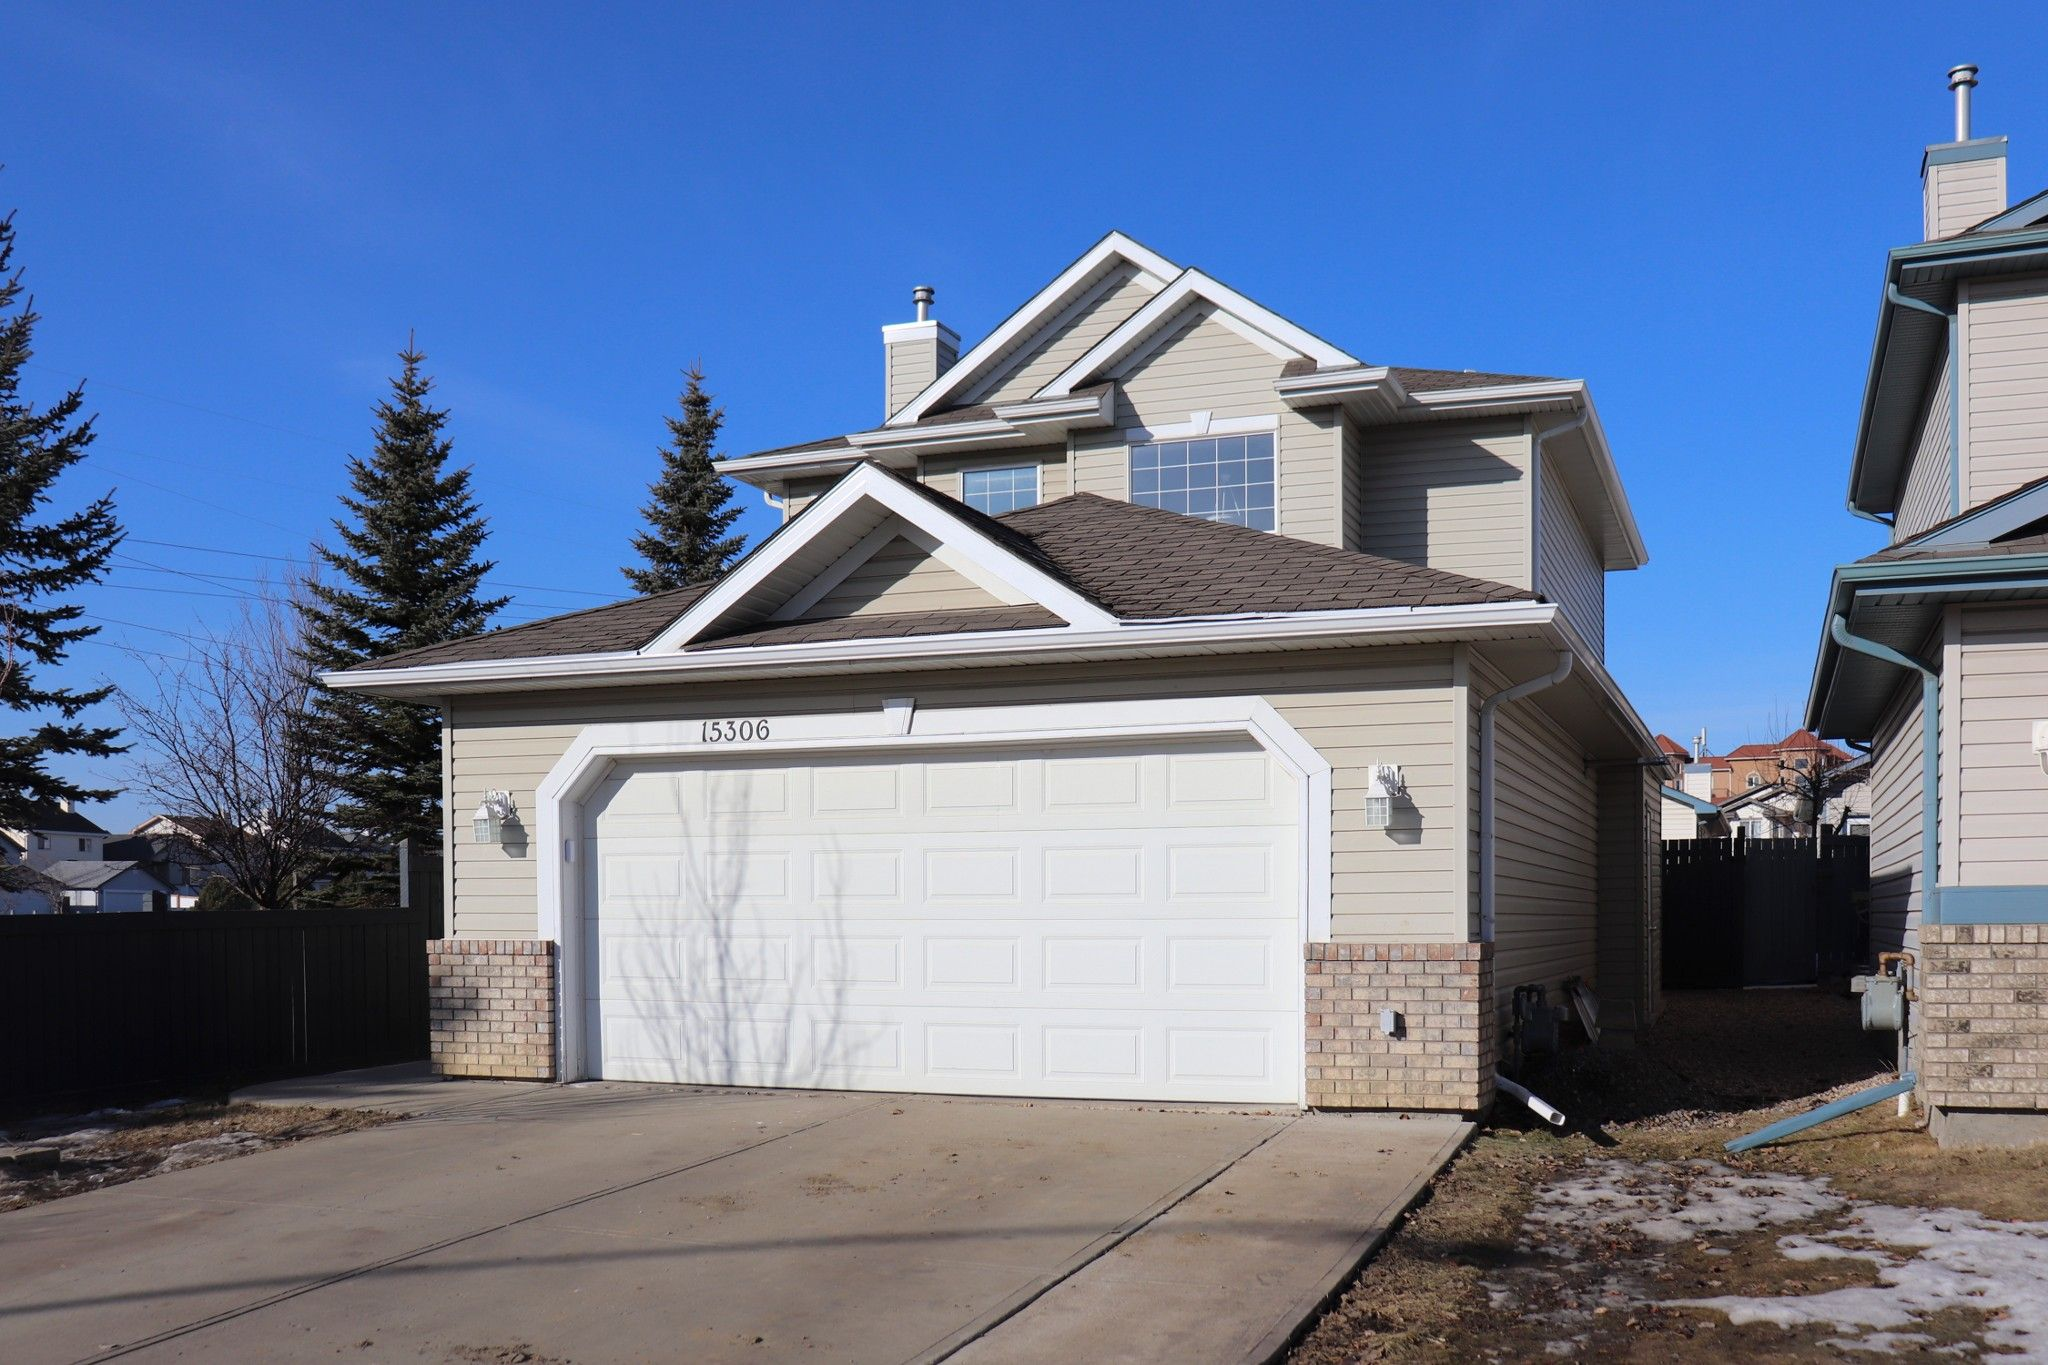 Main Photo: 15306 138a St NW in Edmonton: House for sale : MLS®# E4233828